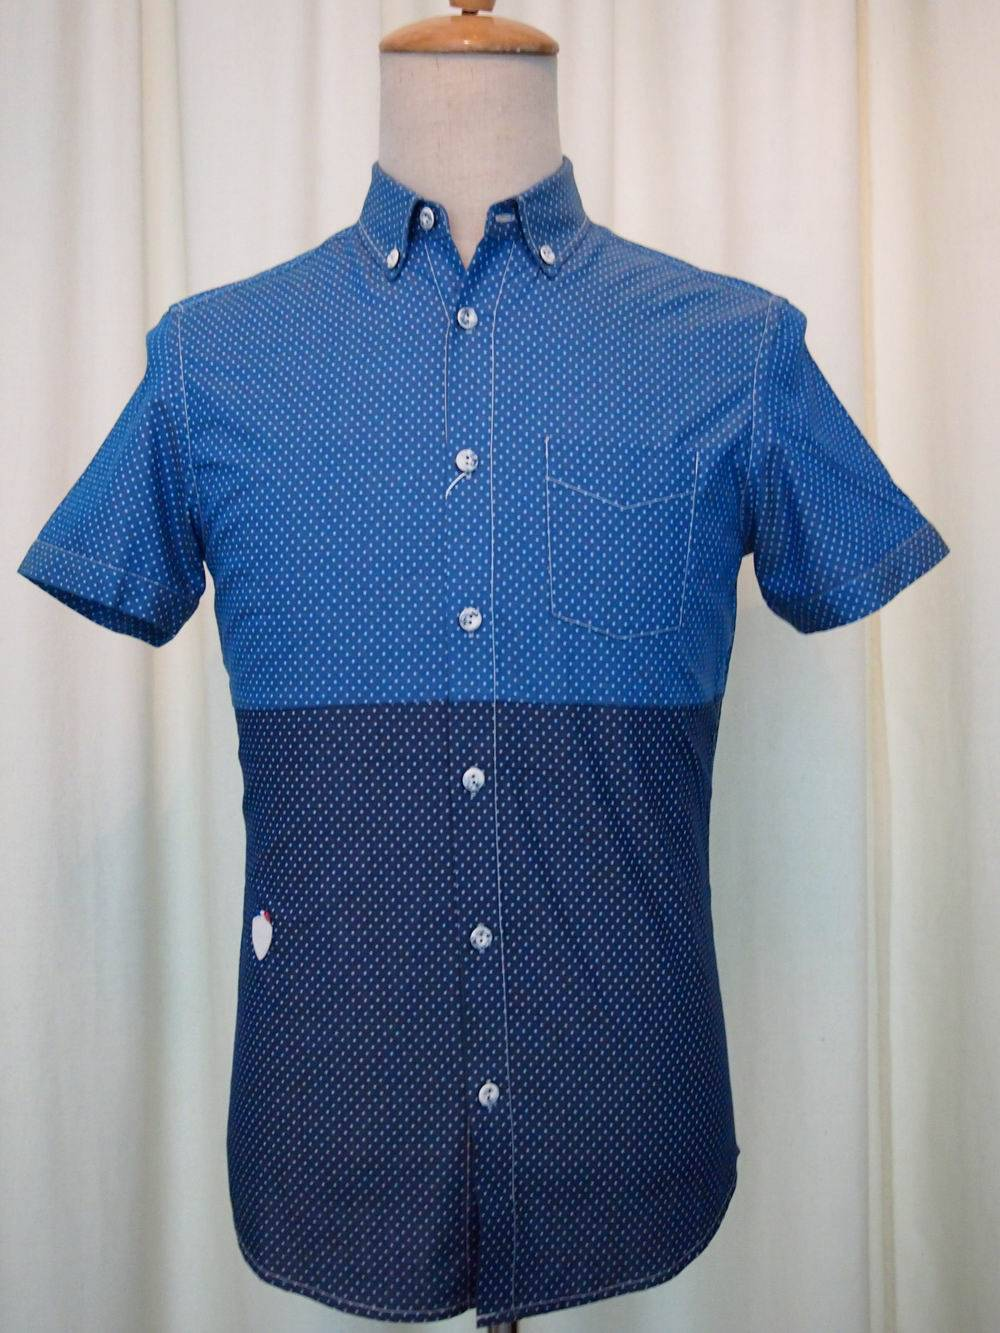 2015Fashion NEW Style Men's Short Sleeve Shirt